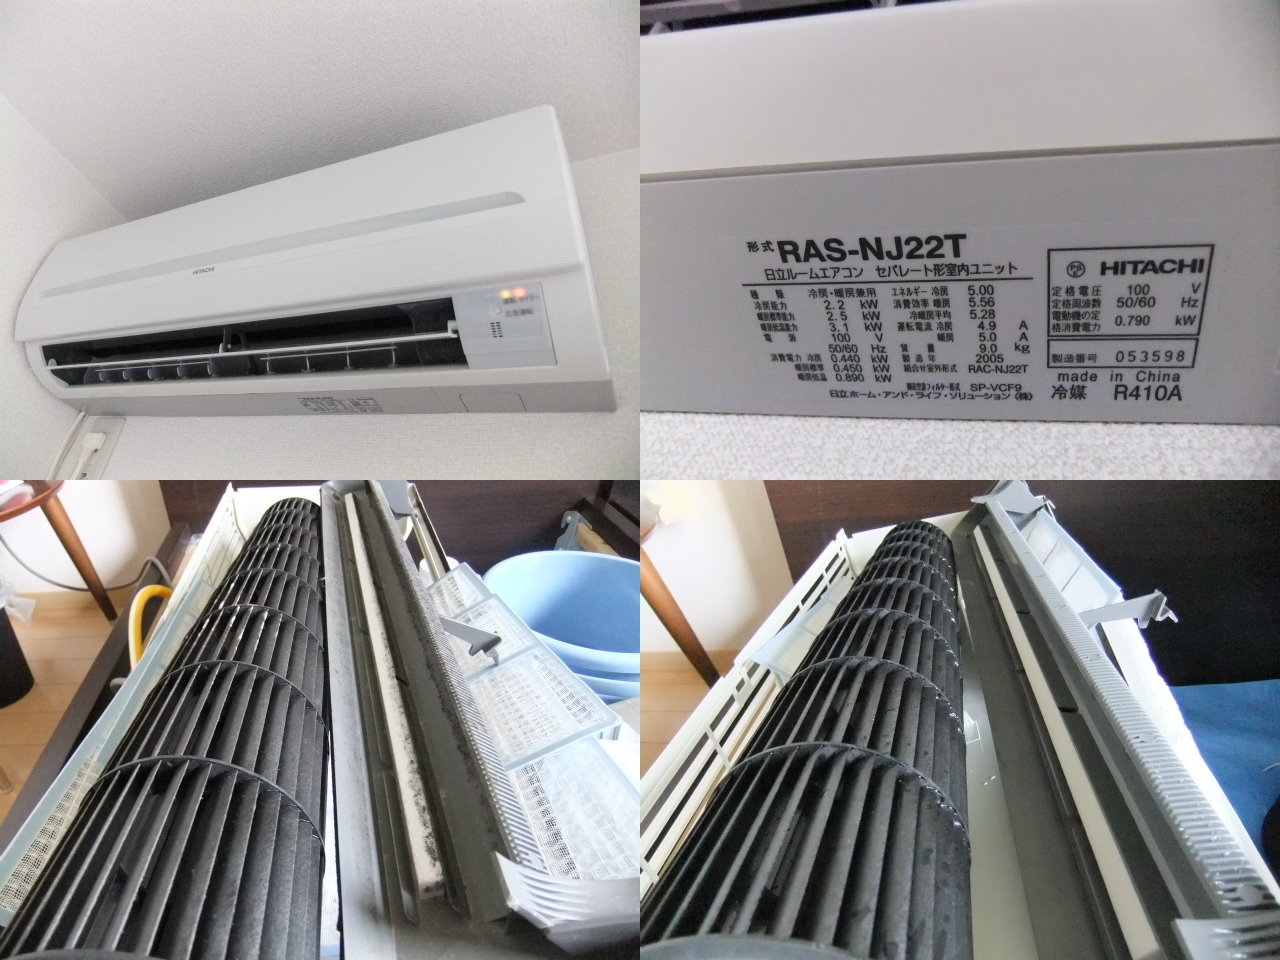 http://ajras.net/images/120703-aircon2.jpg